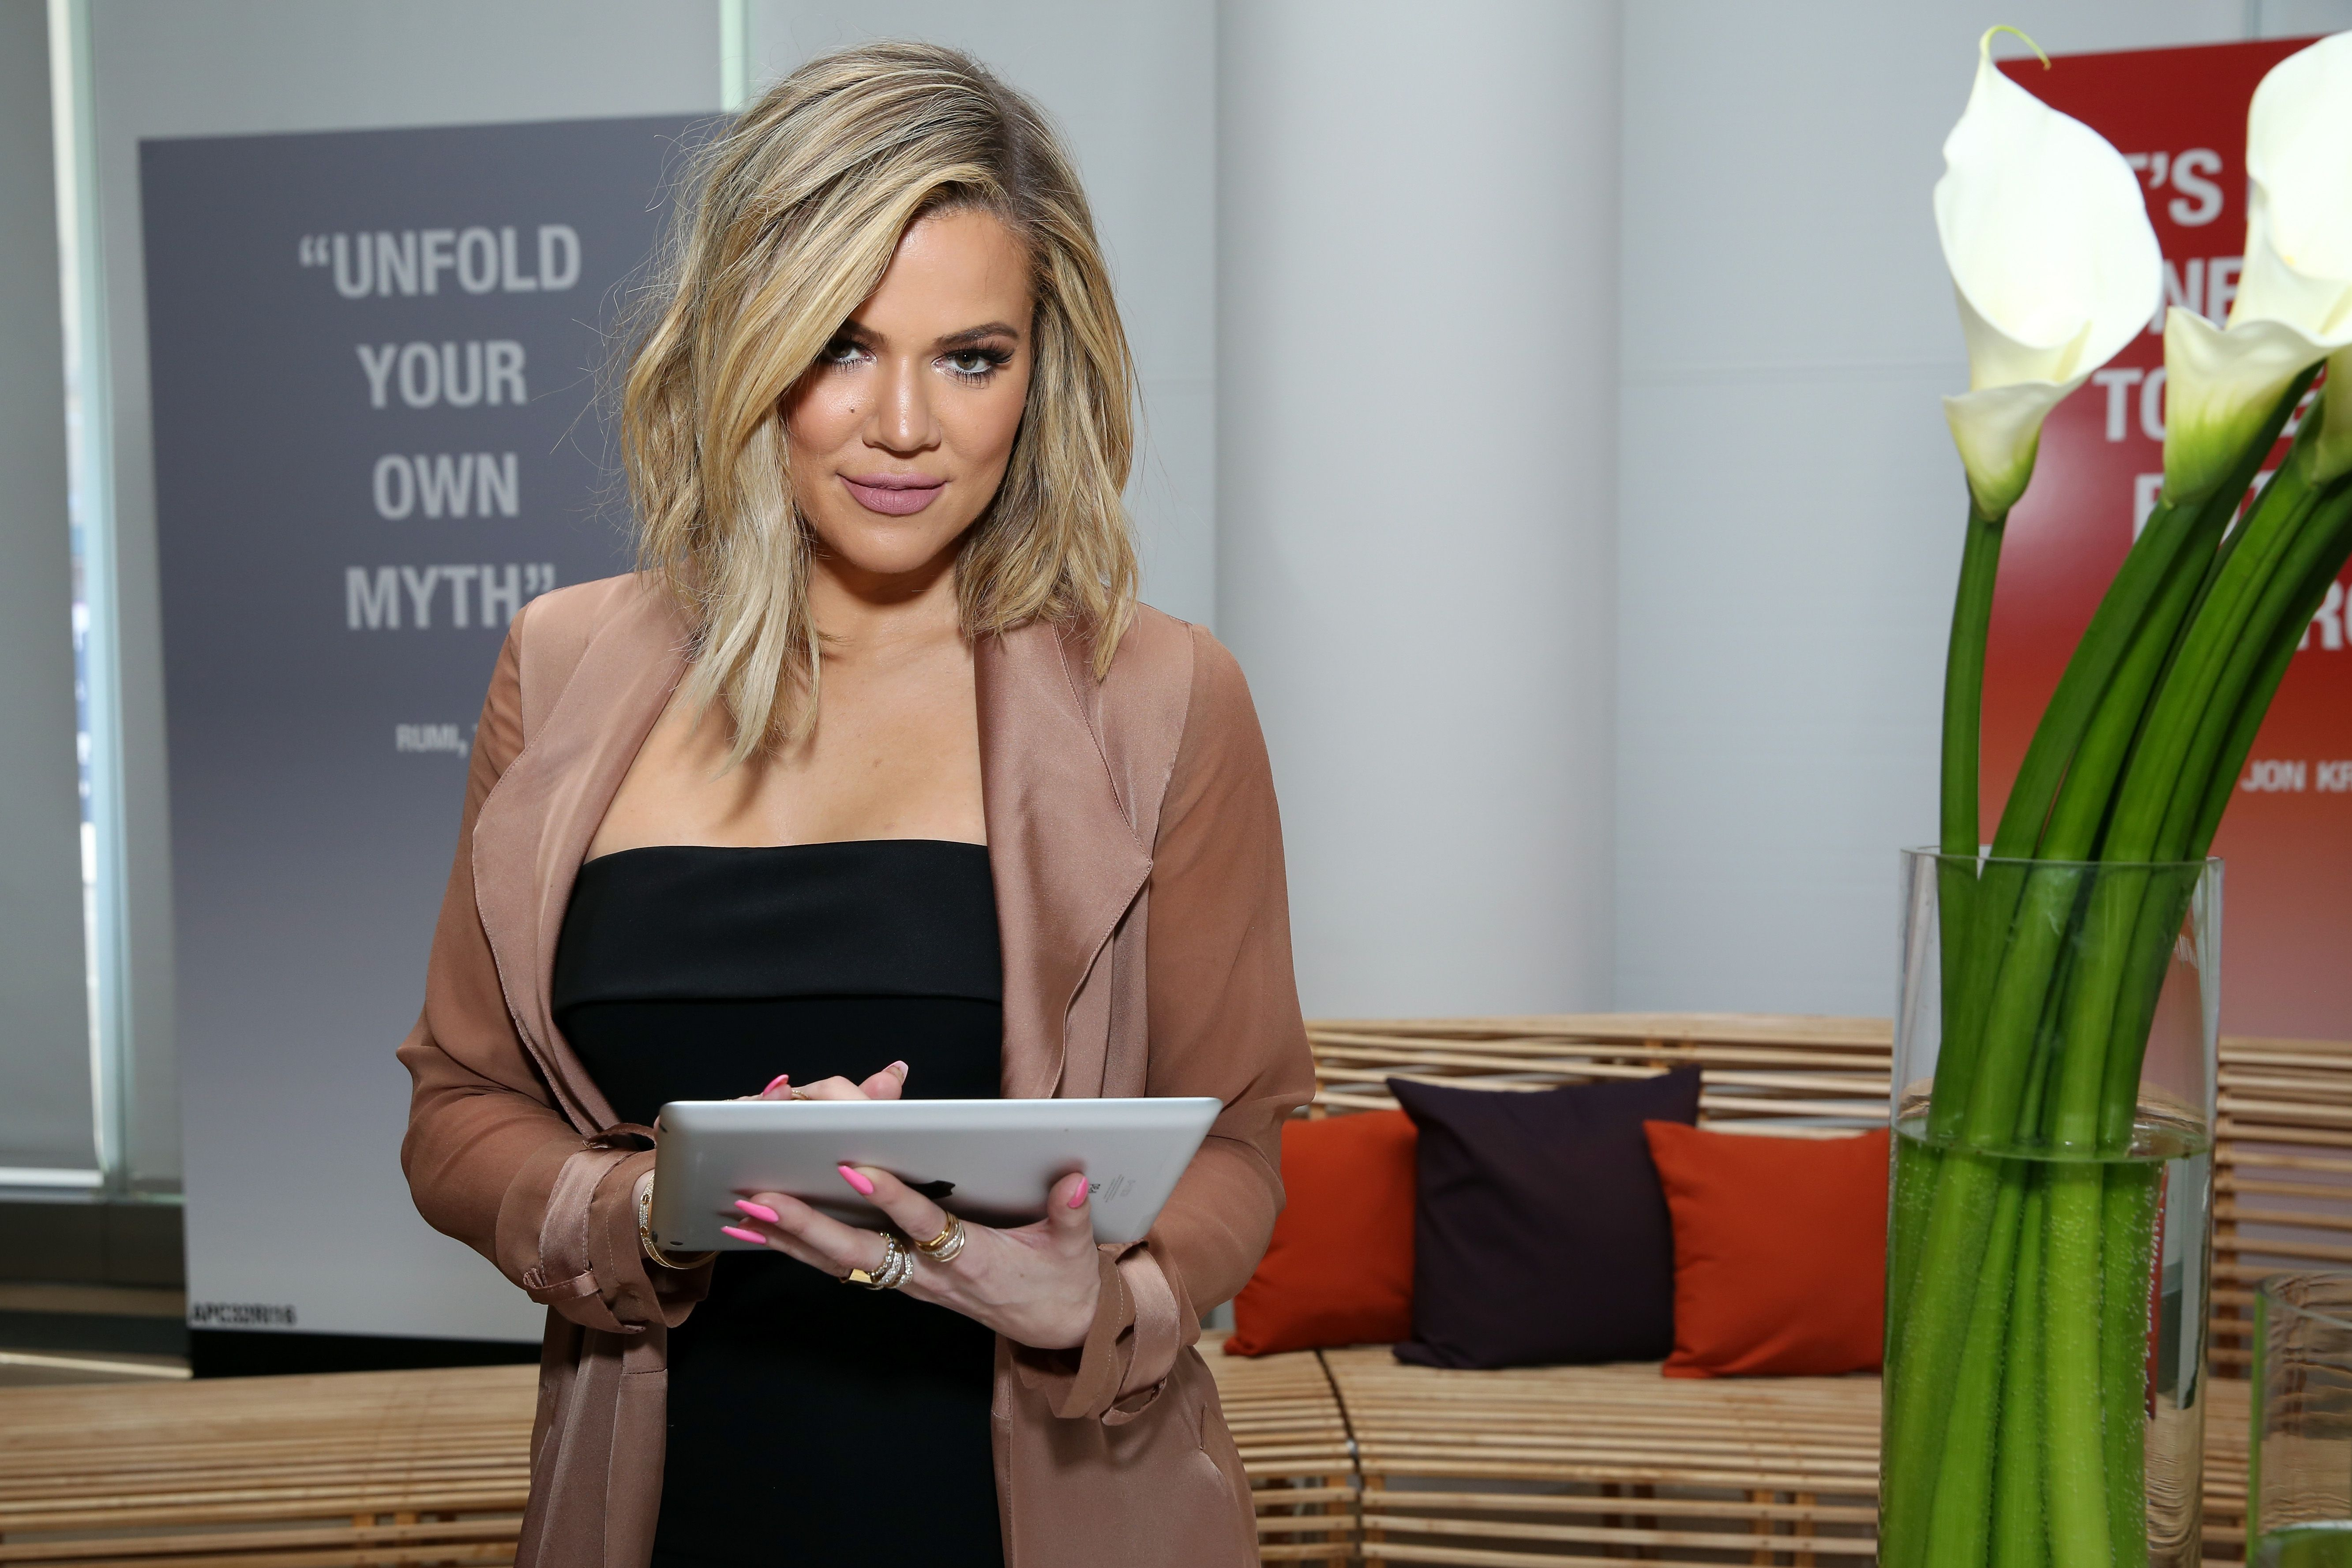 Fans Are Freaking Out Over How Different Khloé Kardashian Looks in This Video